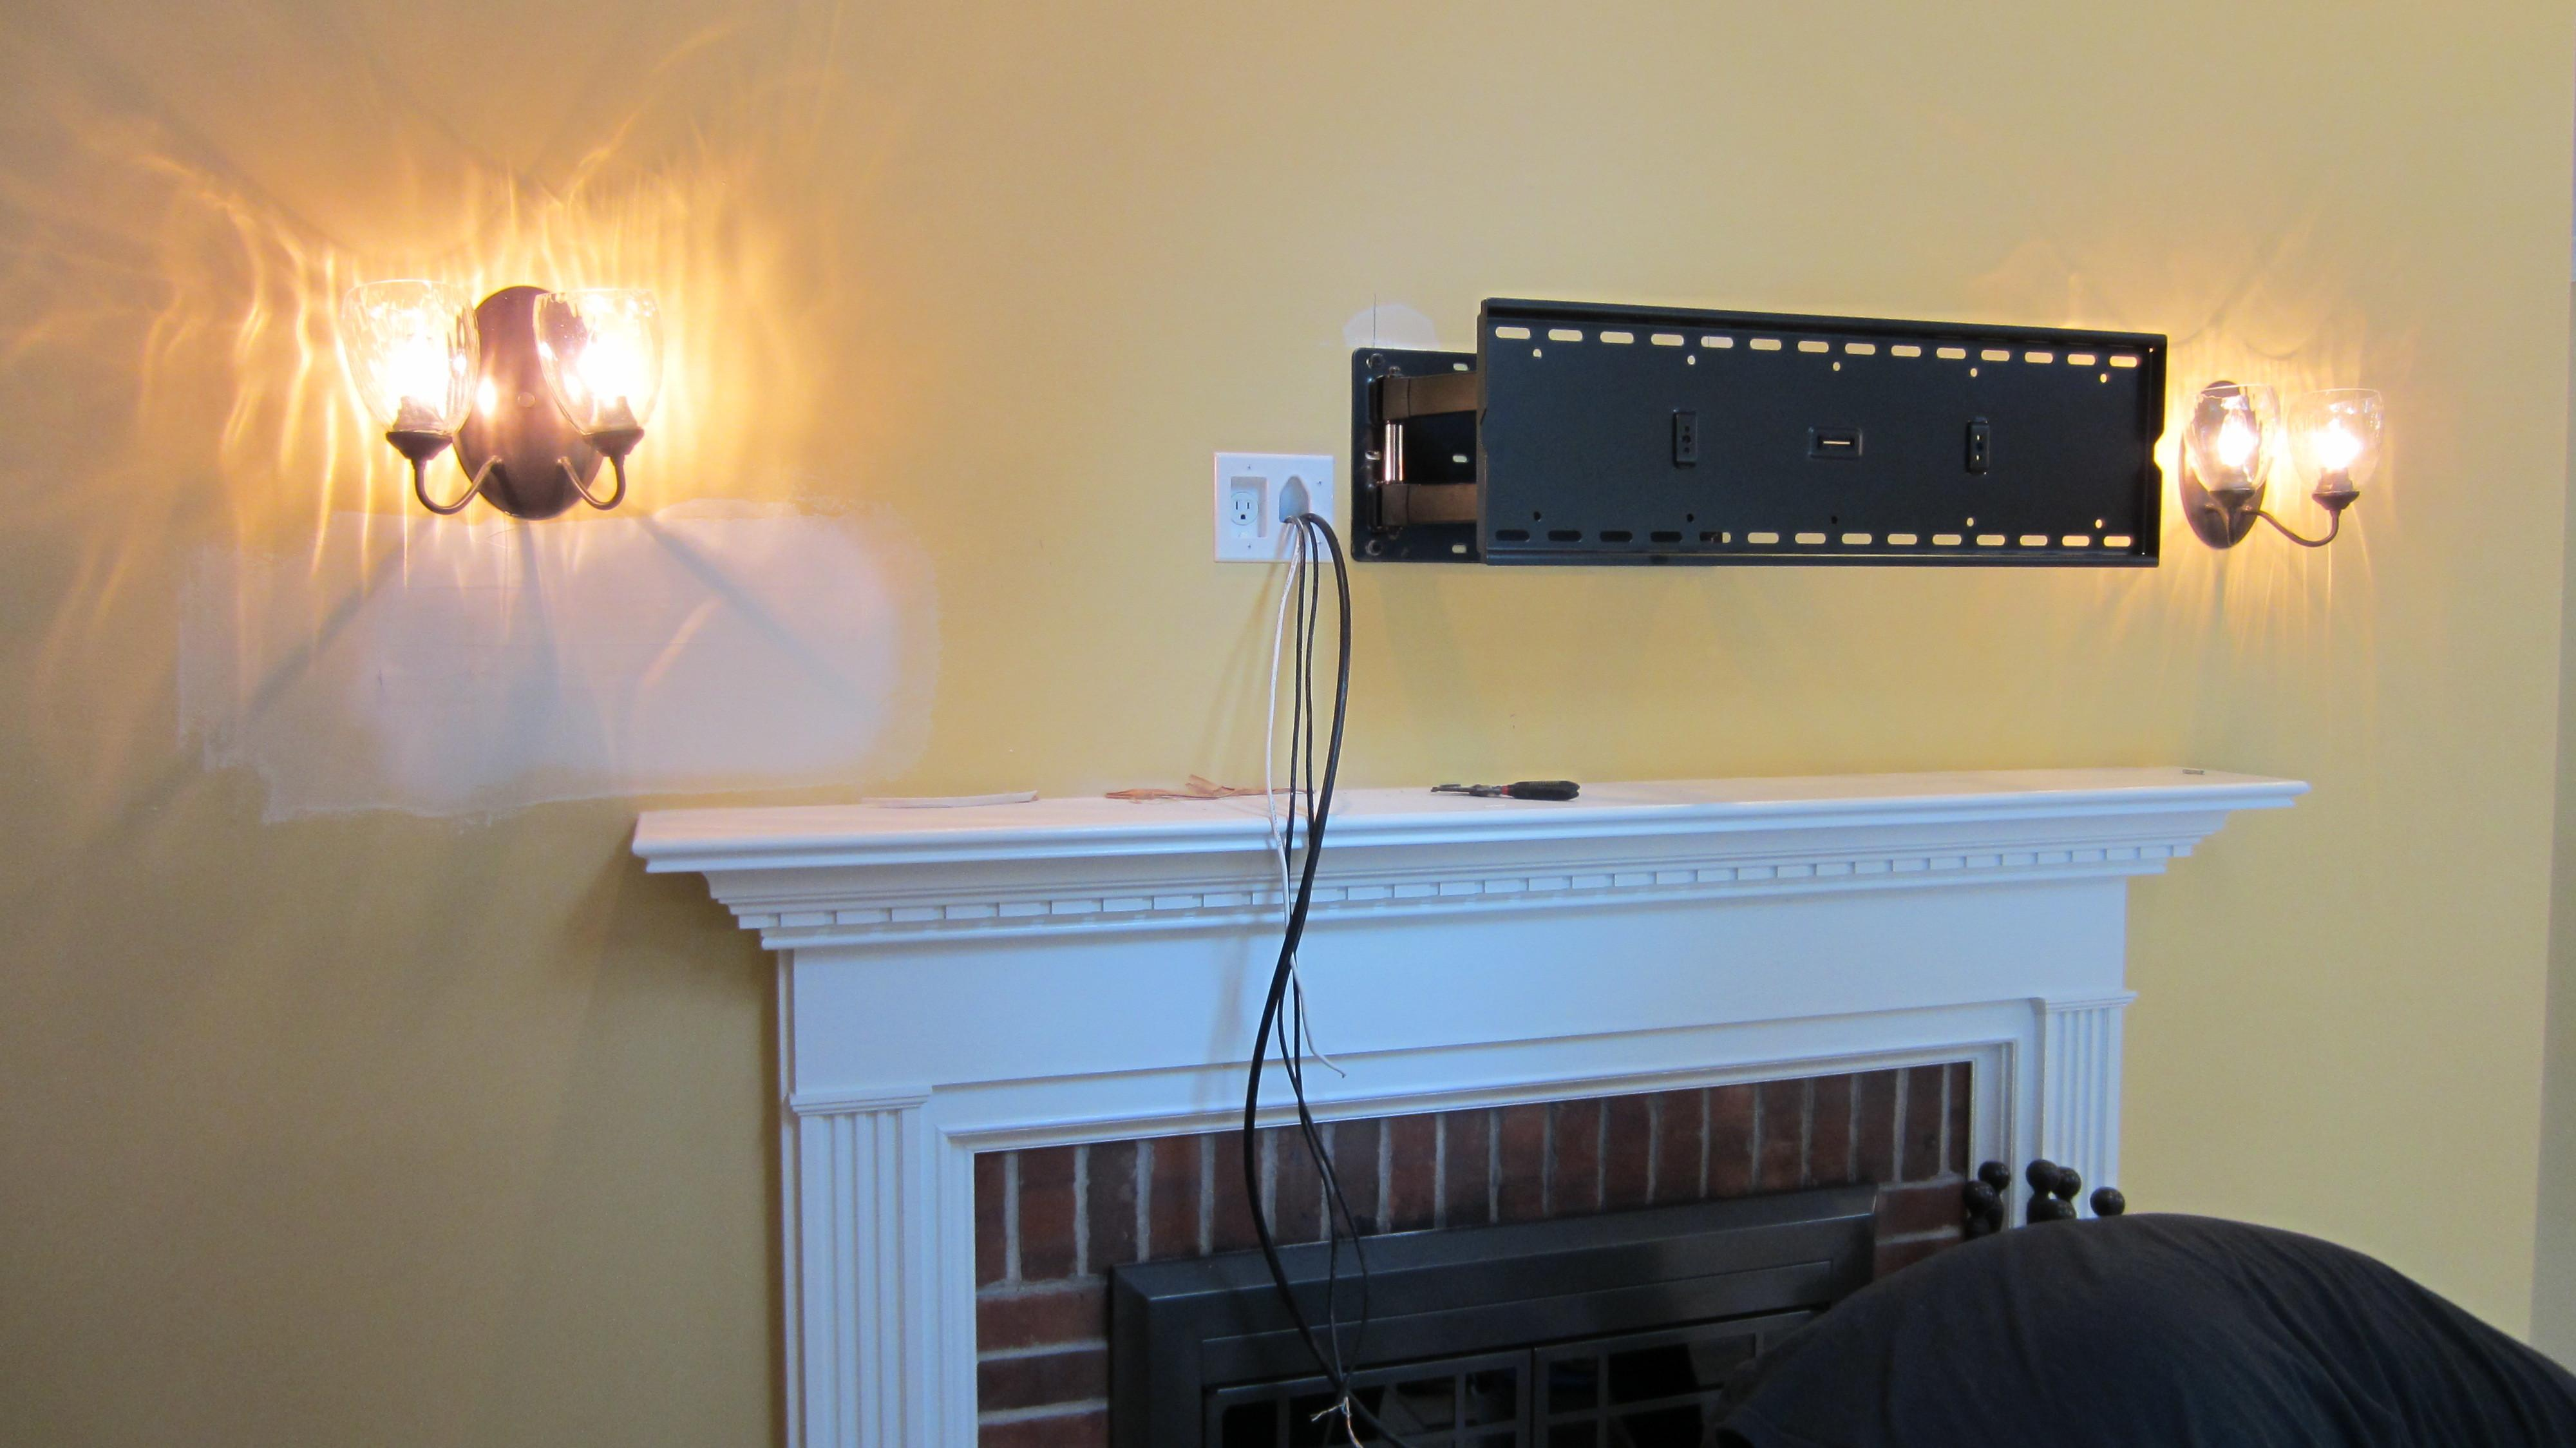 Mount Above Fireplace Wires Design Ideas